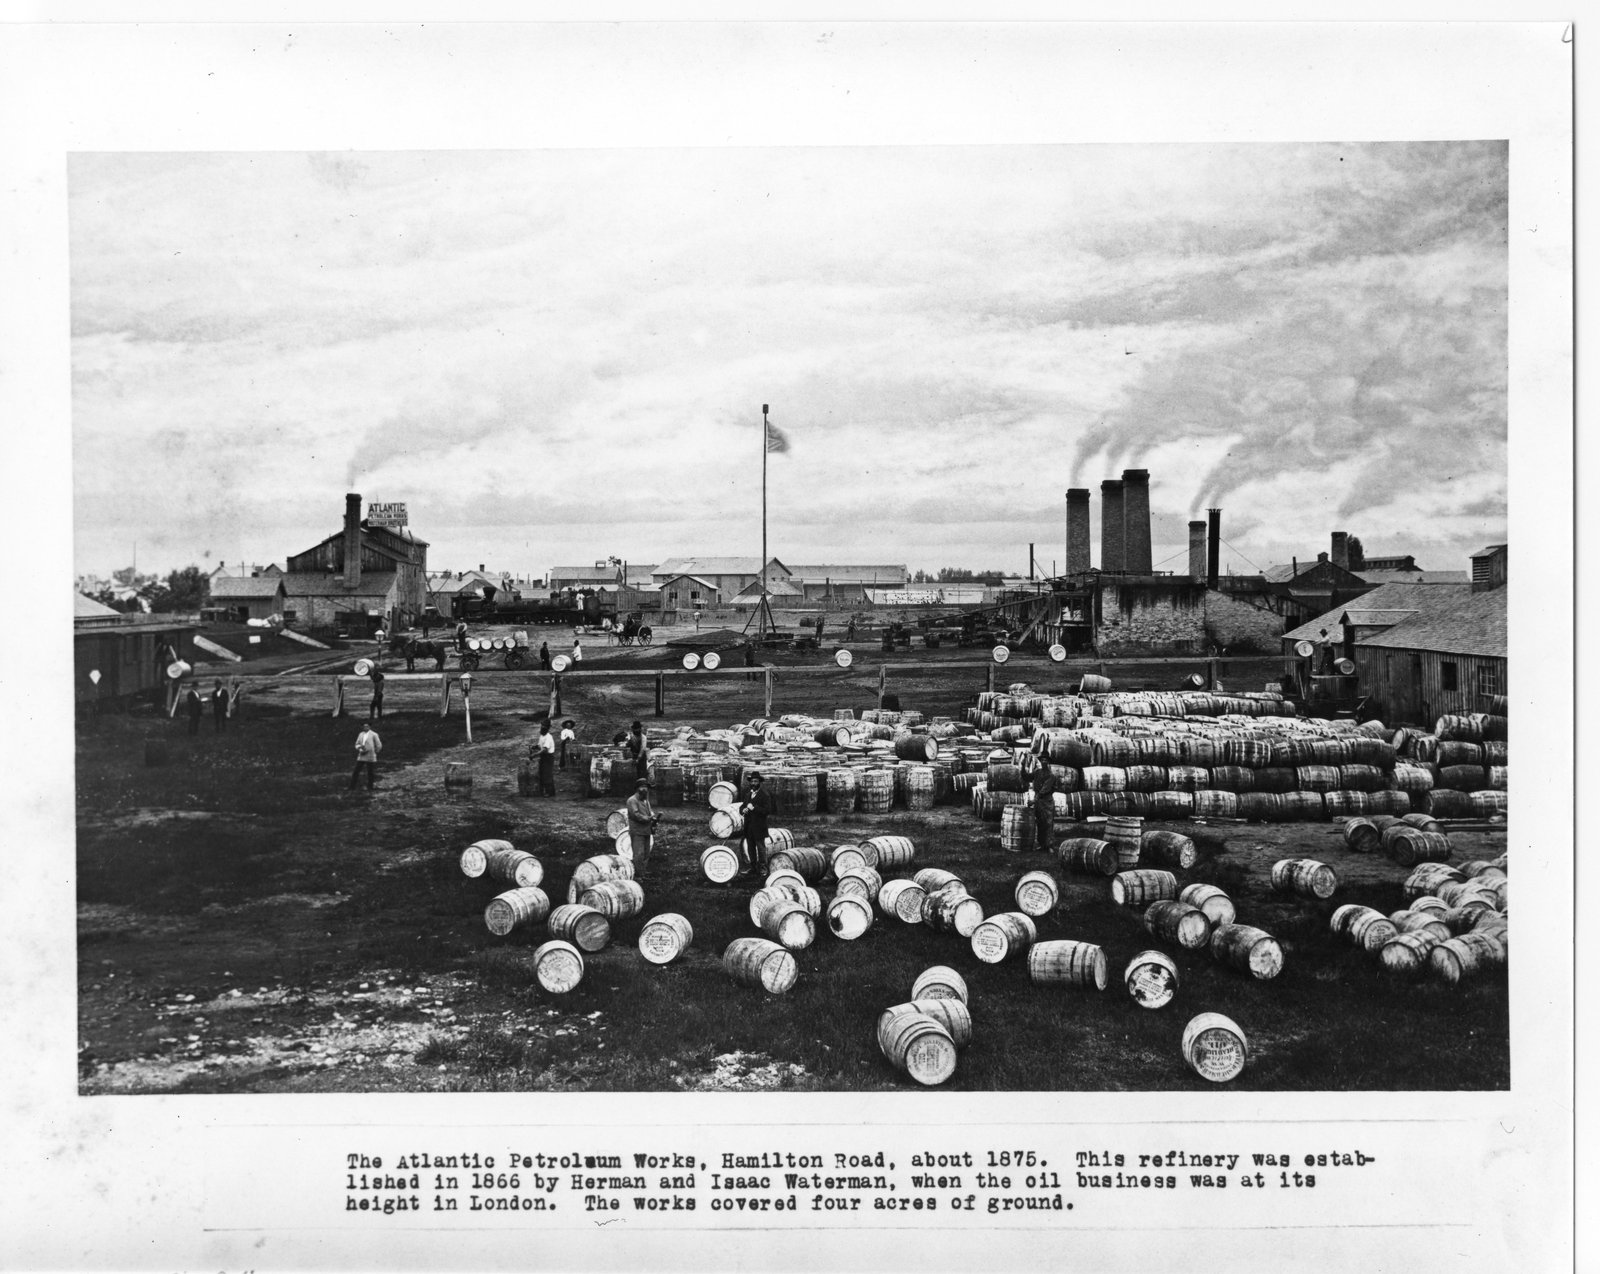 A black and white photo of an industrial yard on Hamilton Road with hundreds of barrels piled up.